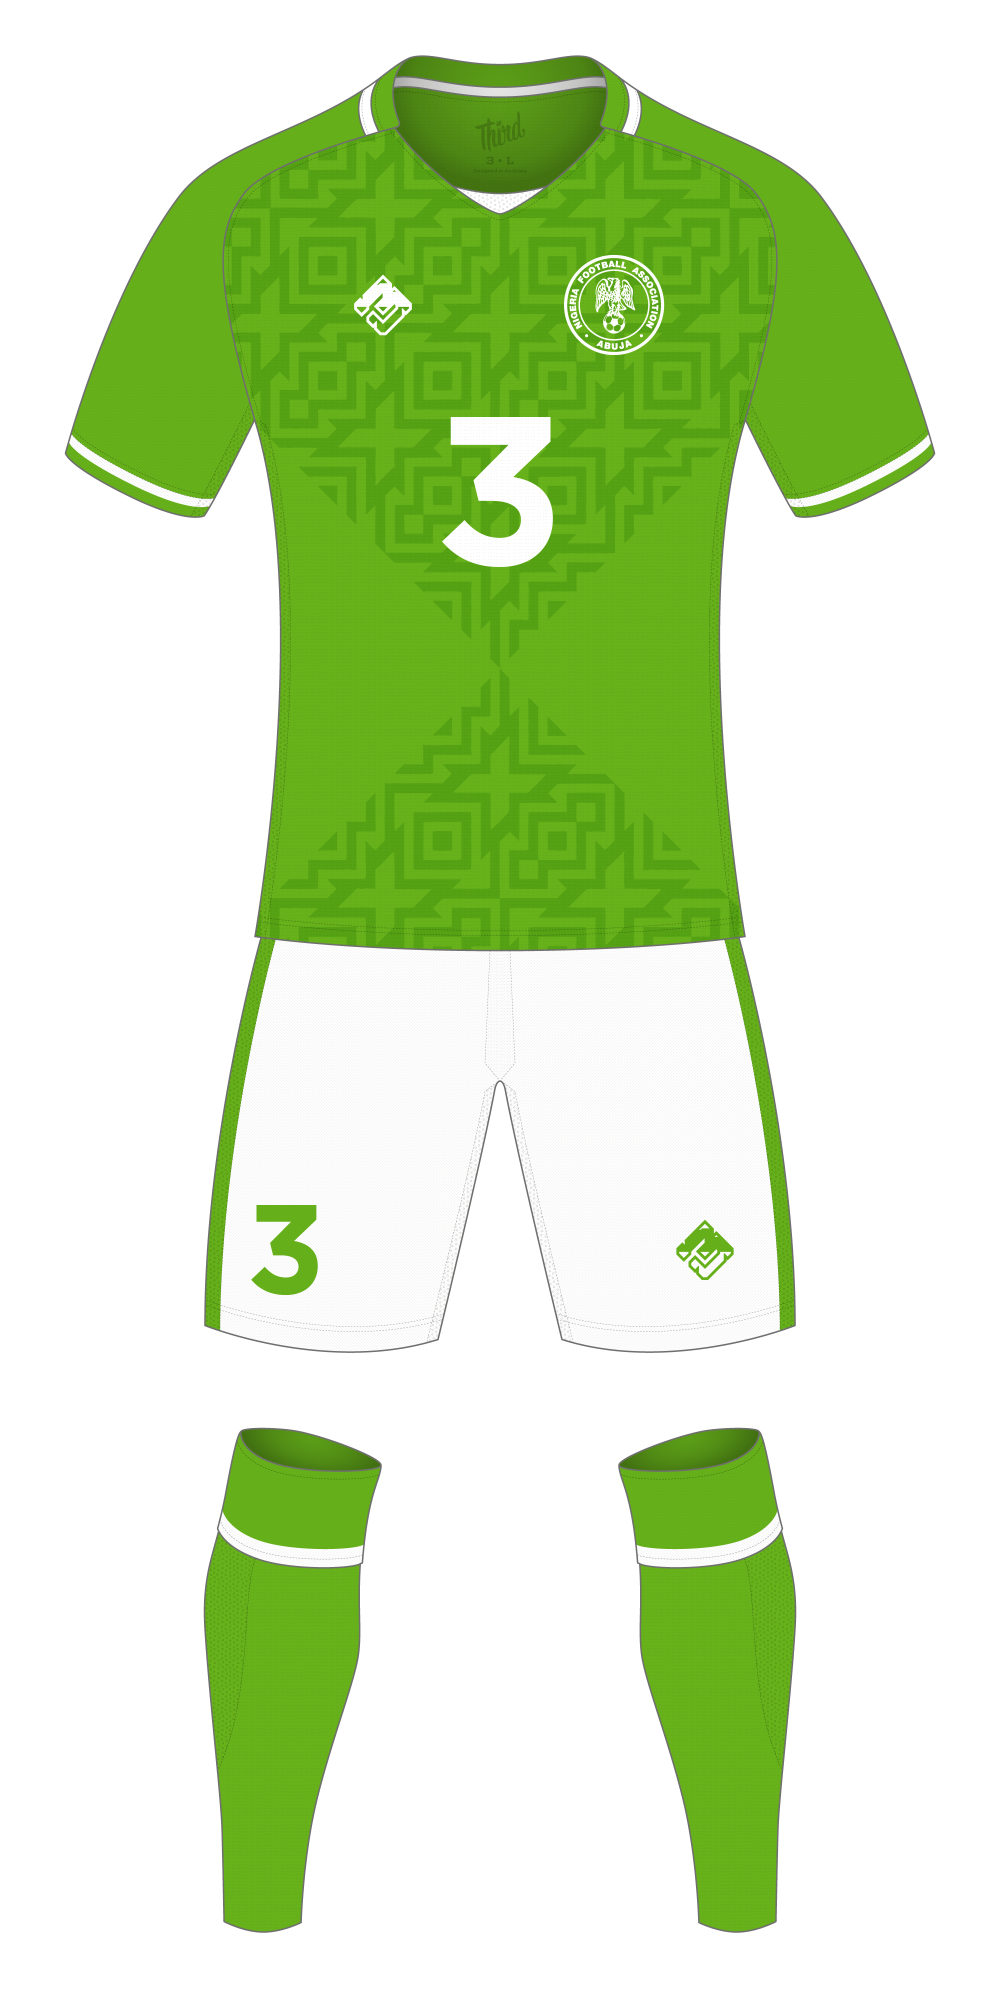 Nigeria World Cup 2018 concept